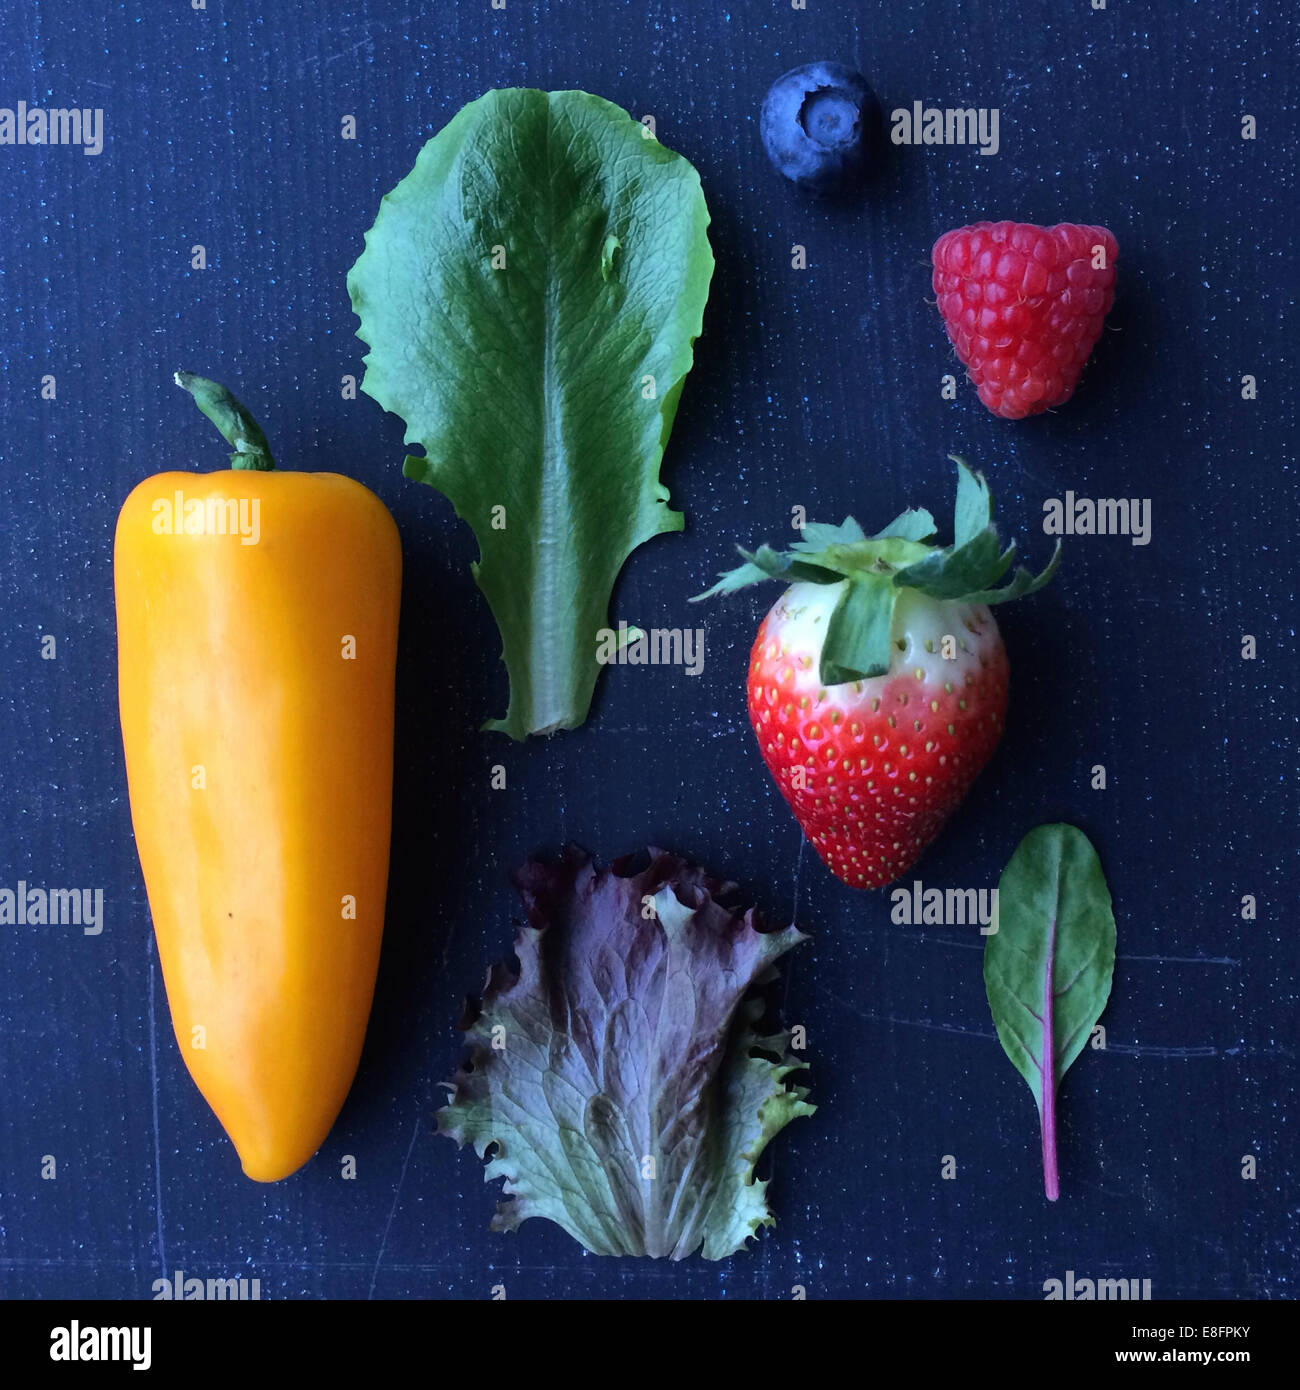 Fruit, vegetables and salad leaves - Stock Image